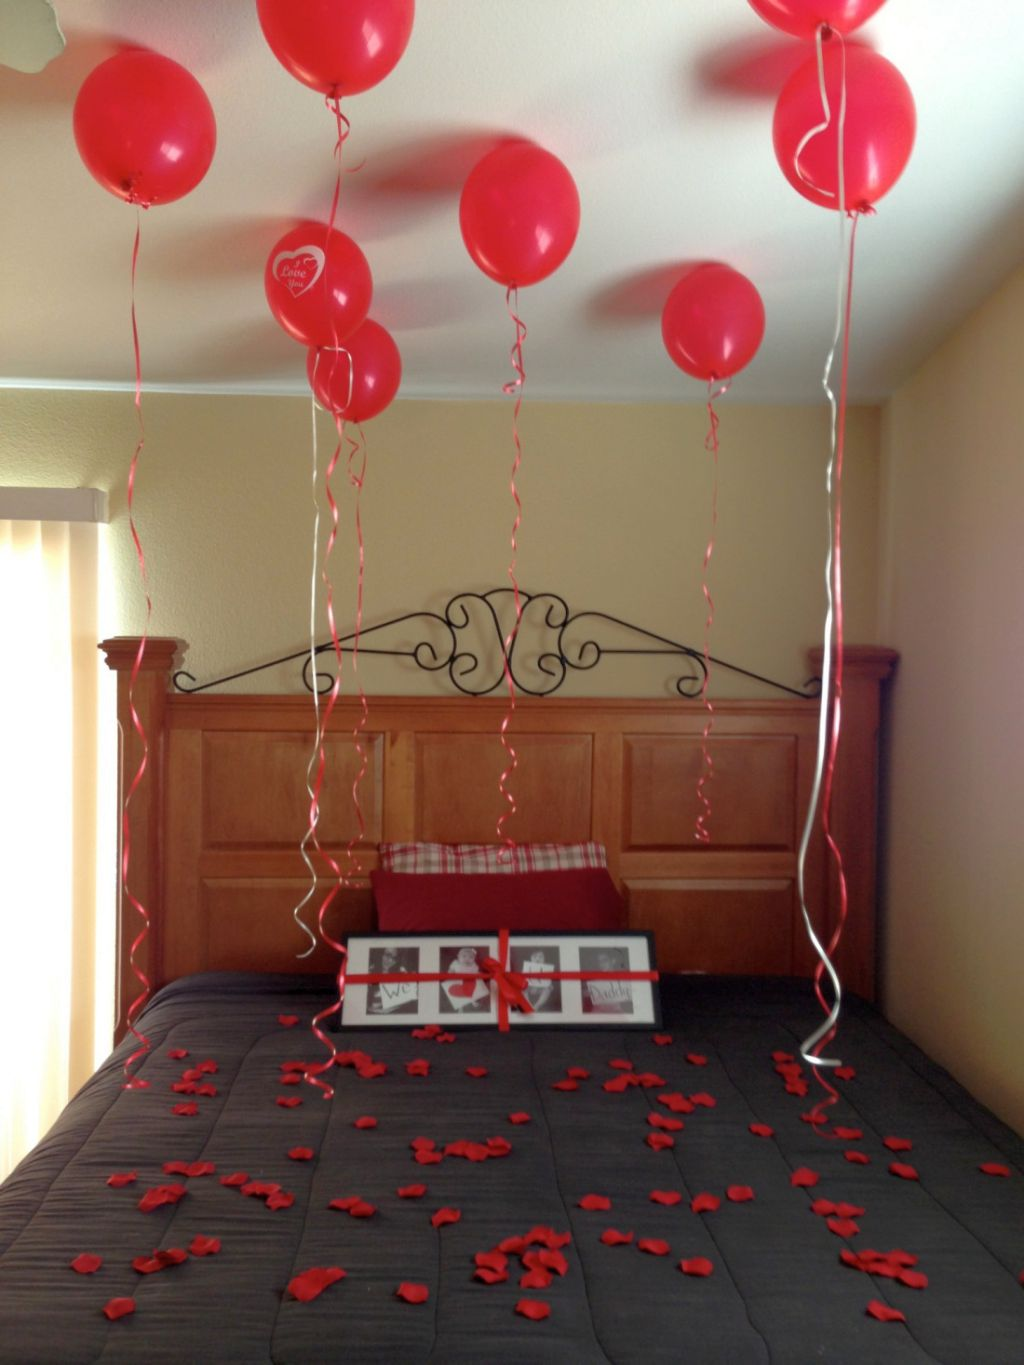 Easy diy bedroom decoration for valentines day with for Bed decoration with flowers and balloons